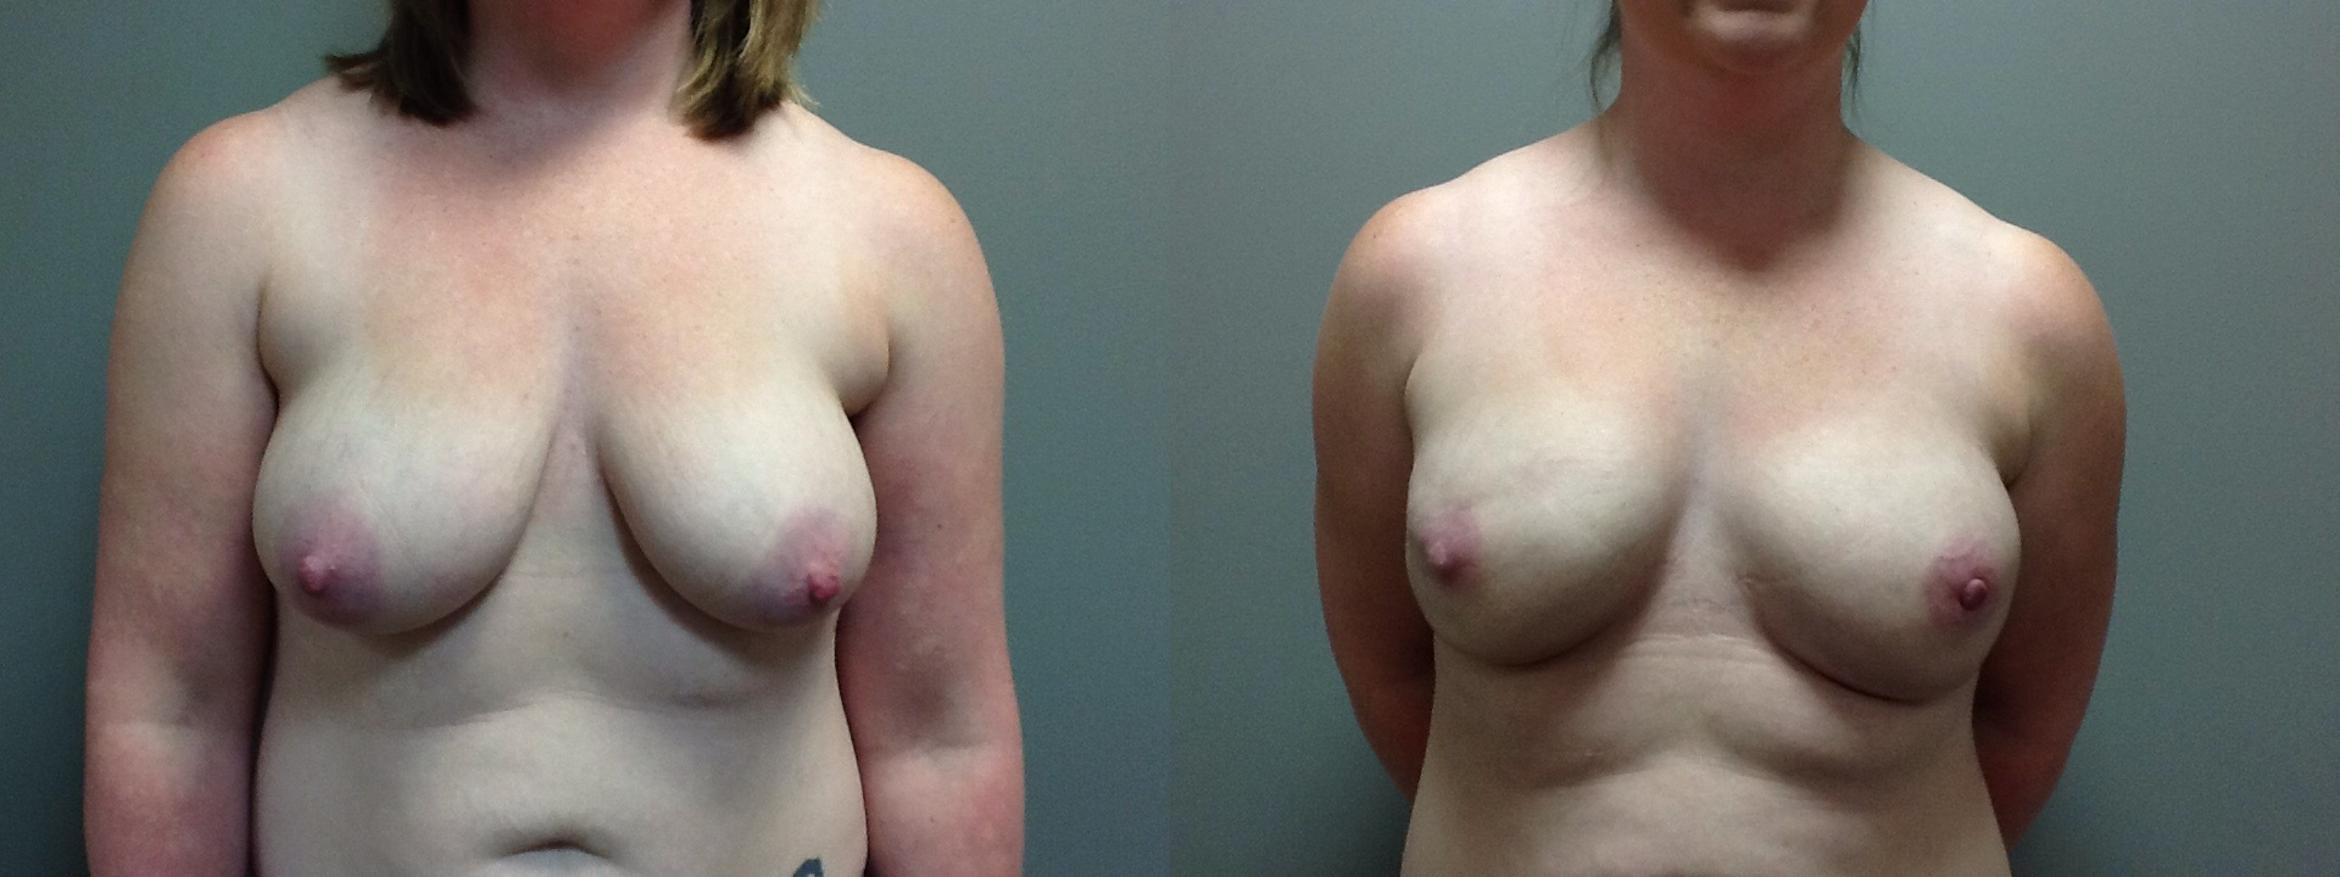 Breast Reconstruction Before & After Photo | Longmeadow, MA | Aesthetic Plastic & Reconstructive Surgery